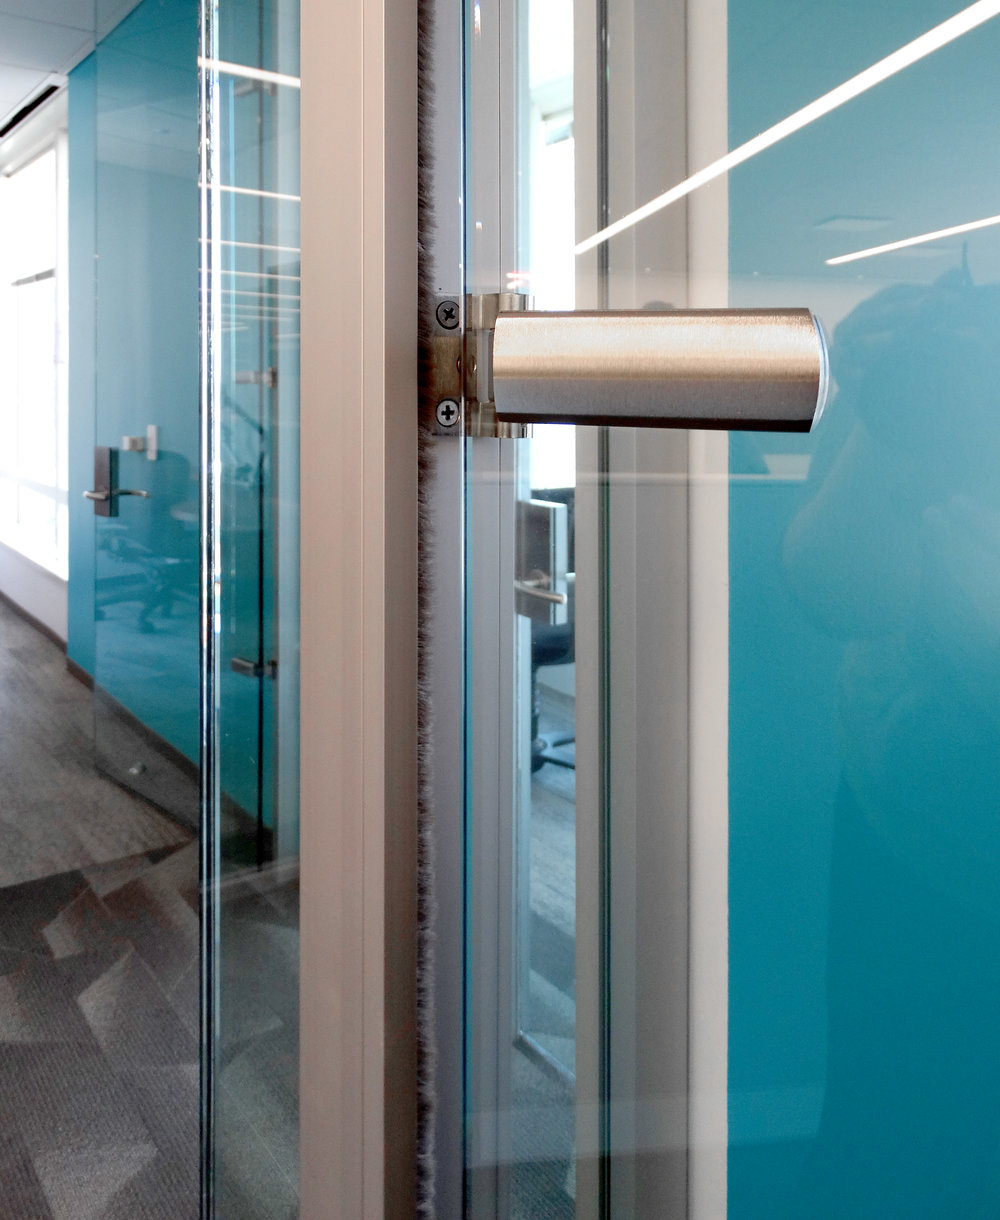 Litespace Frameless Glass Door Hinge - Spaceworks AI.jpg